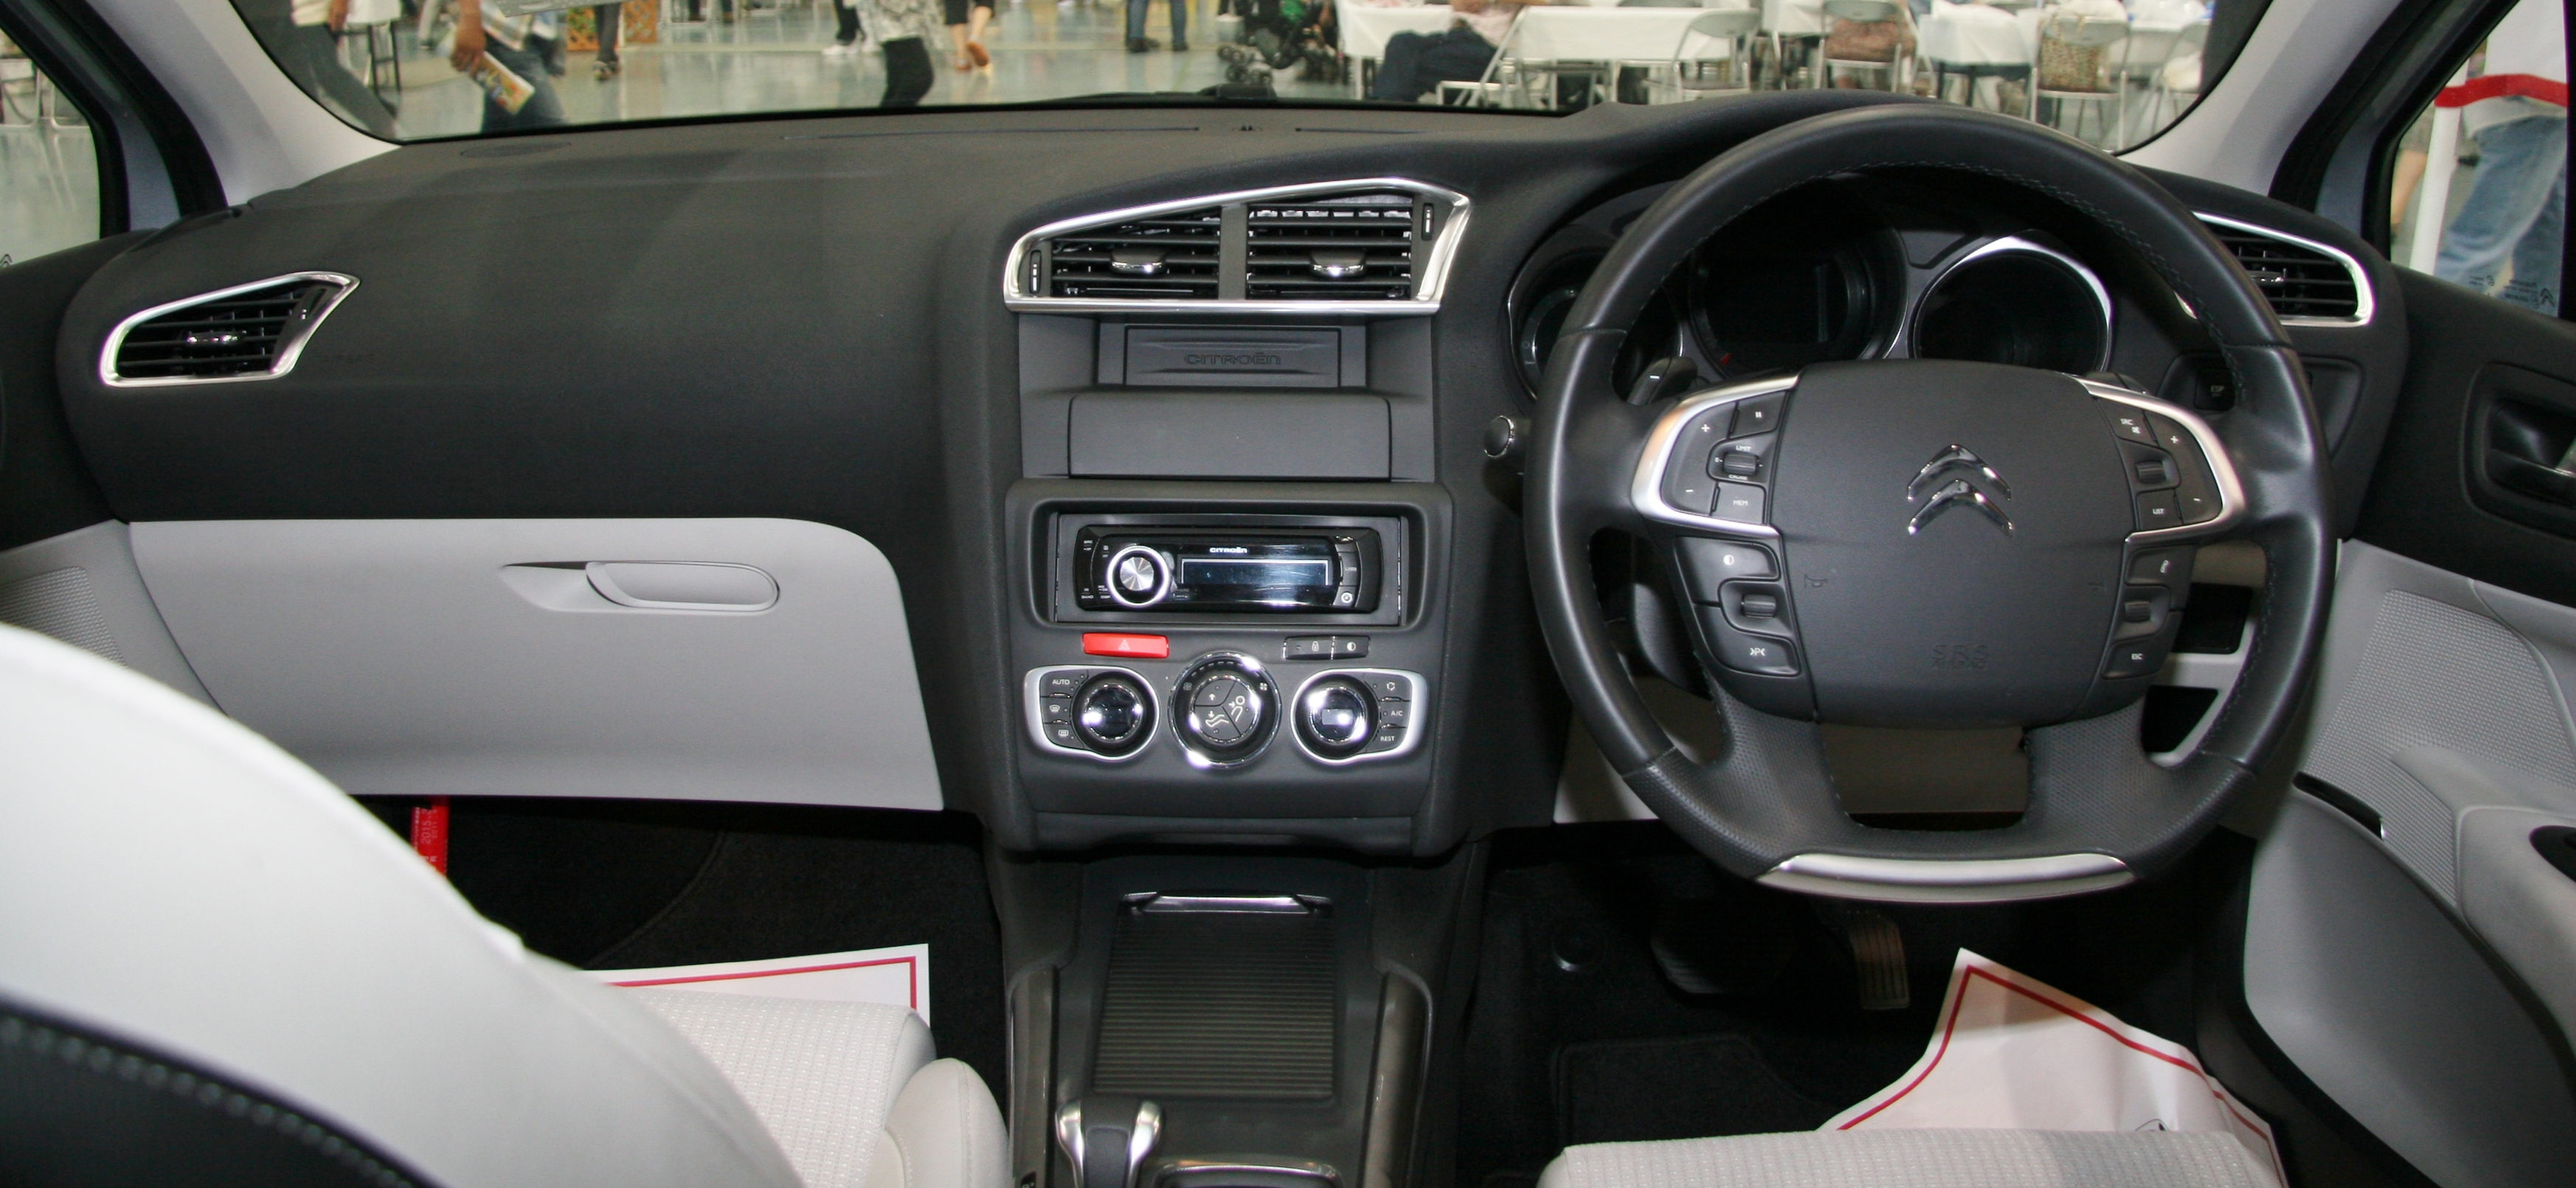 citroen c4 picasso 2012 interior the image kid has it. Black Bedroom Furniture Sets. Home Design Ideas